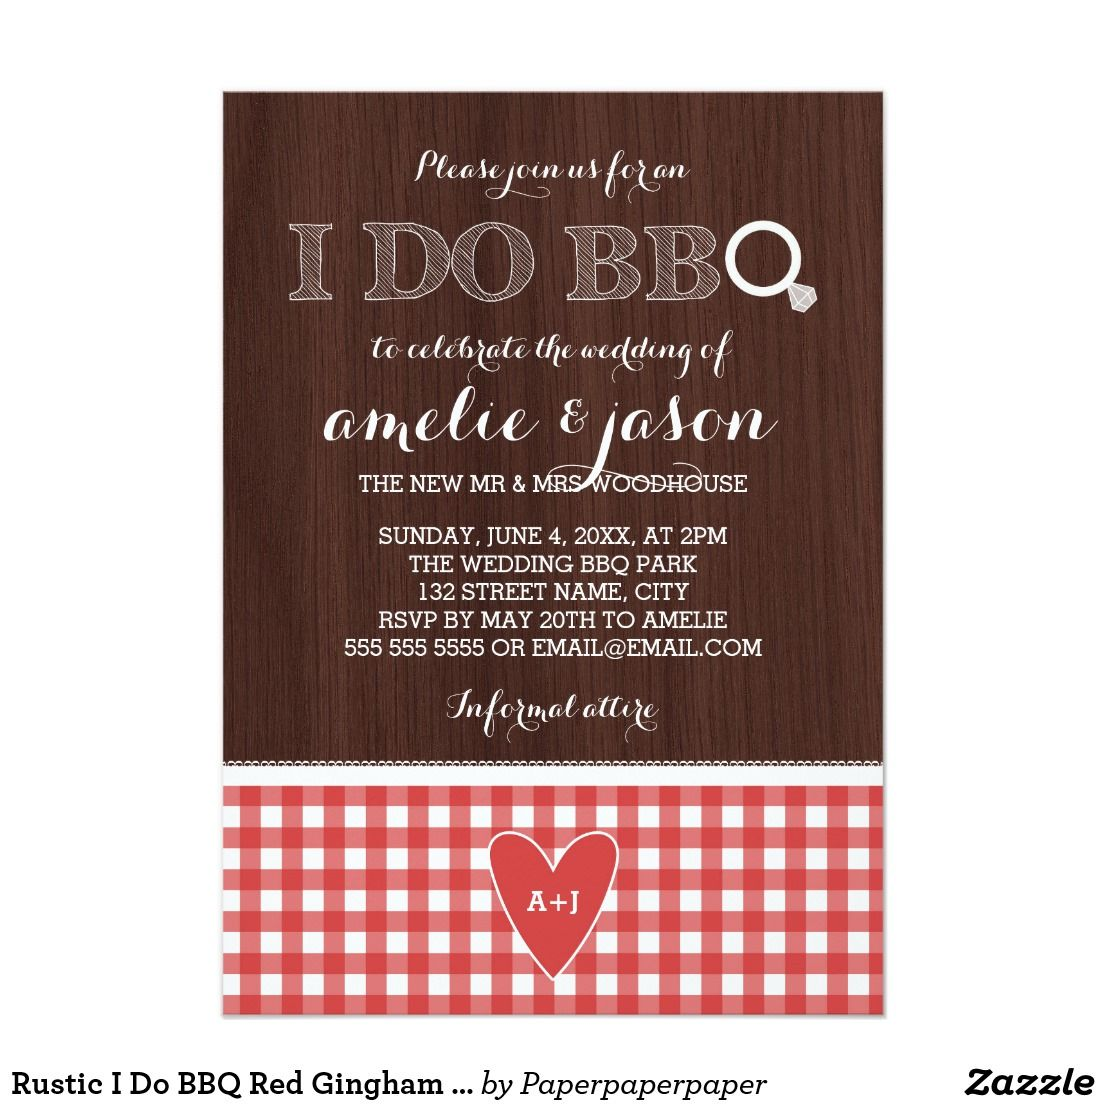 Rustic I Do BBQ Red Gingham Post Wedding Party Card | Red gingham ...